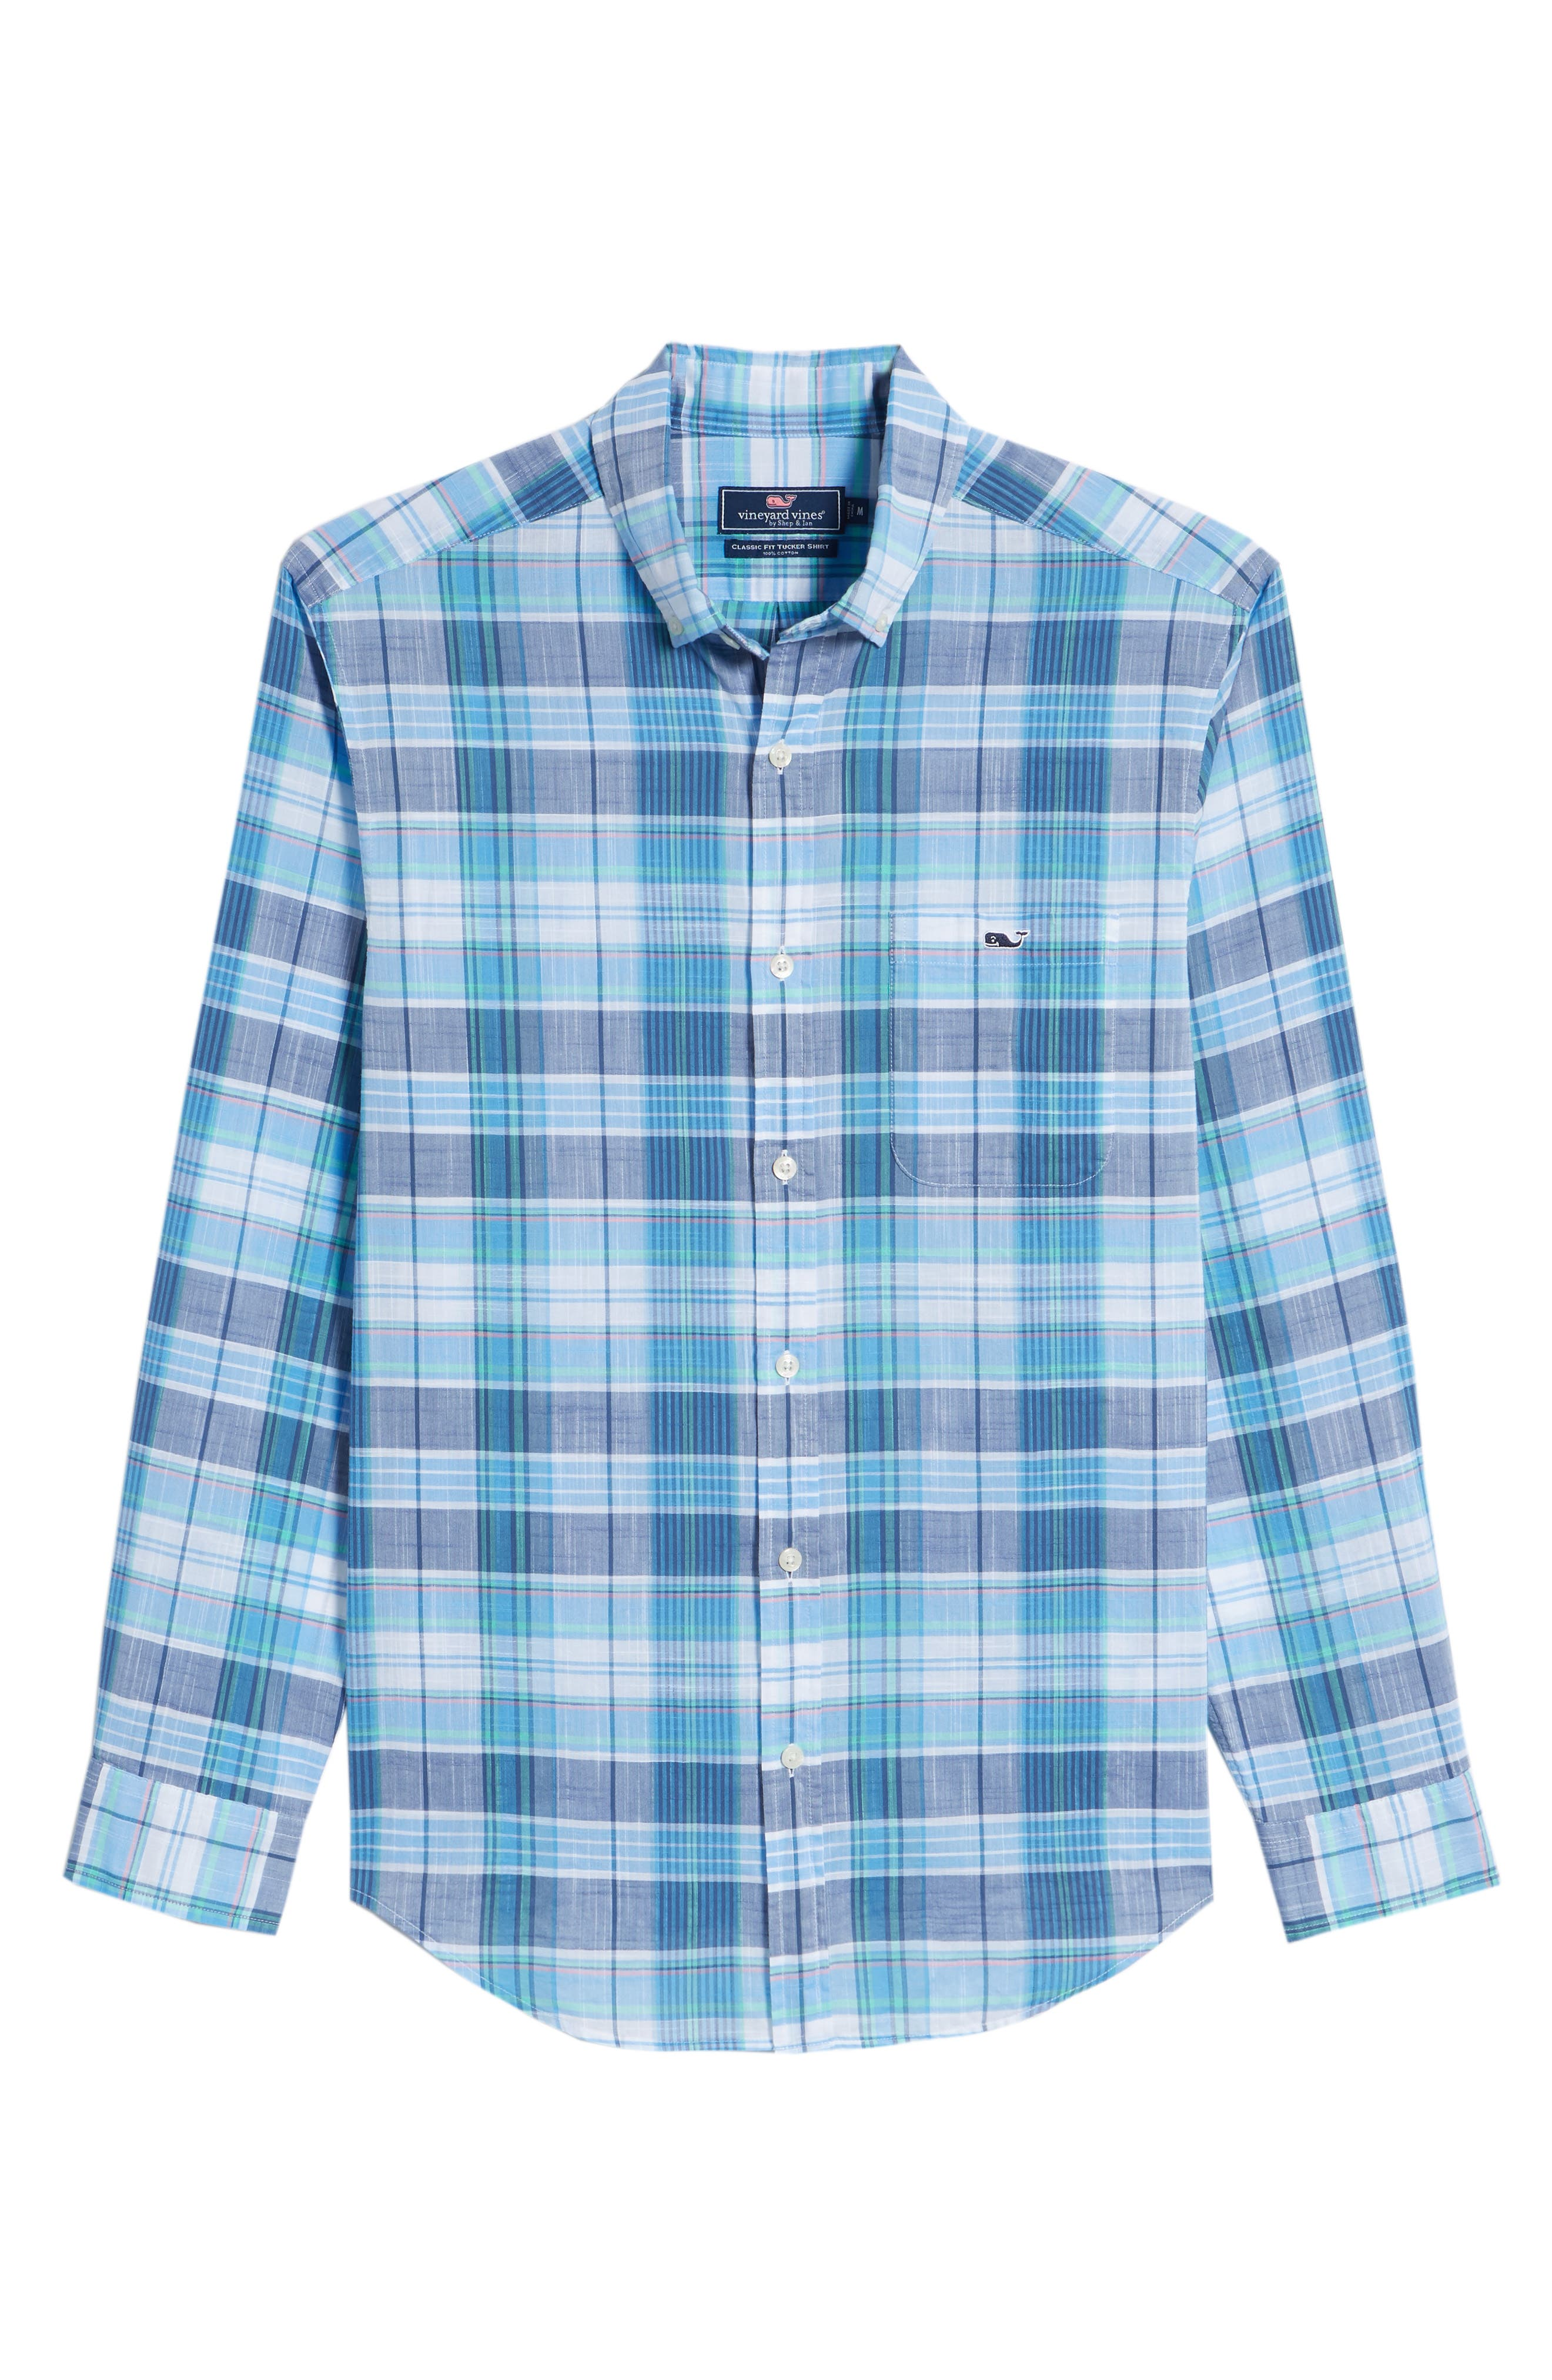 Smith Point Tucker Classic Fit Plaid Sport Shirt,                             Alternate thumbnail 6, color,                             461